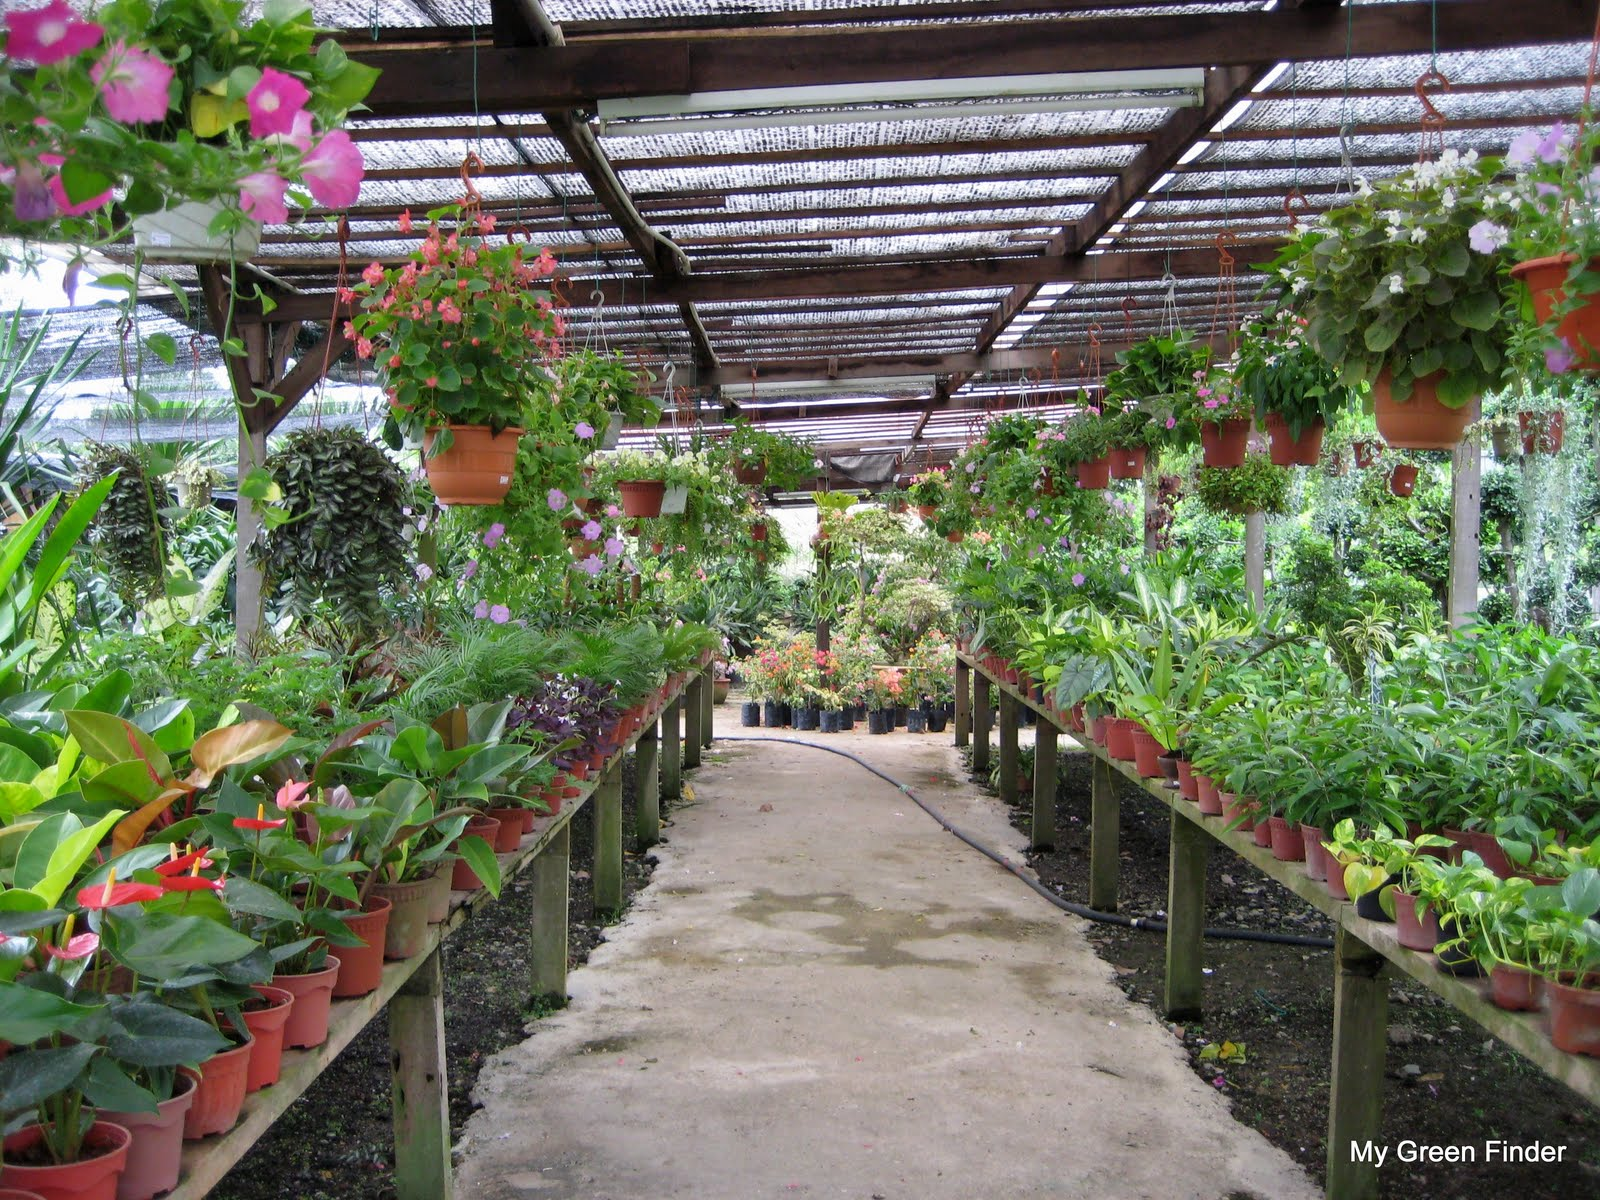 Vinca As Well Some Ferns While On The Racks Are Small Potted Plants Like Anthurium Oxalis Dwarf Palms Money Plant Alocasia Spathiphyllum